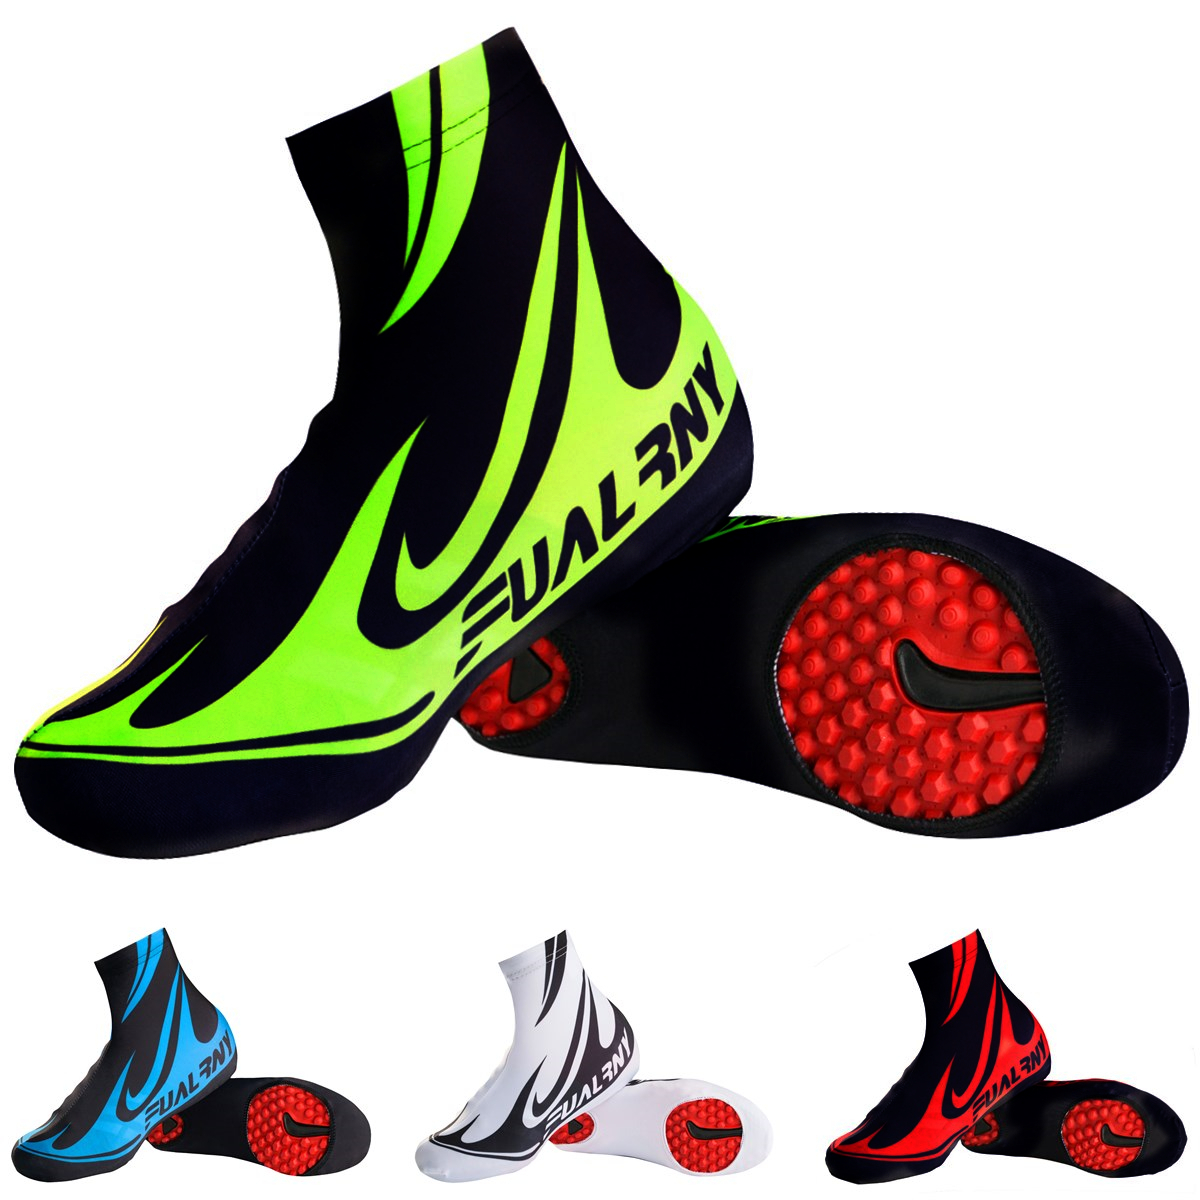 Fualrny Durable Moisture Absorption Breathable MTB Road Mountain Bike Bicycle Cycling Shoes Covers Bike Equipment